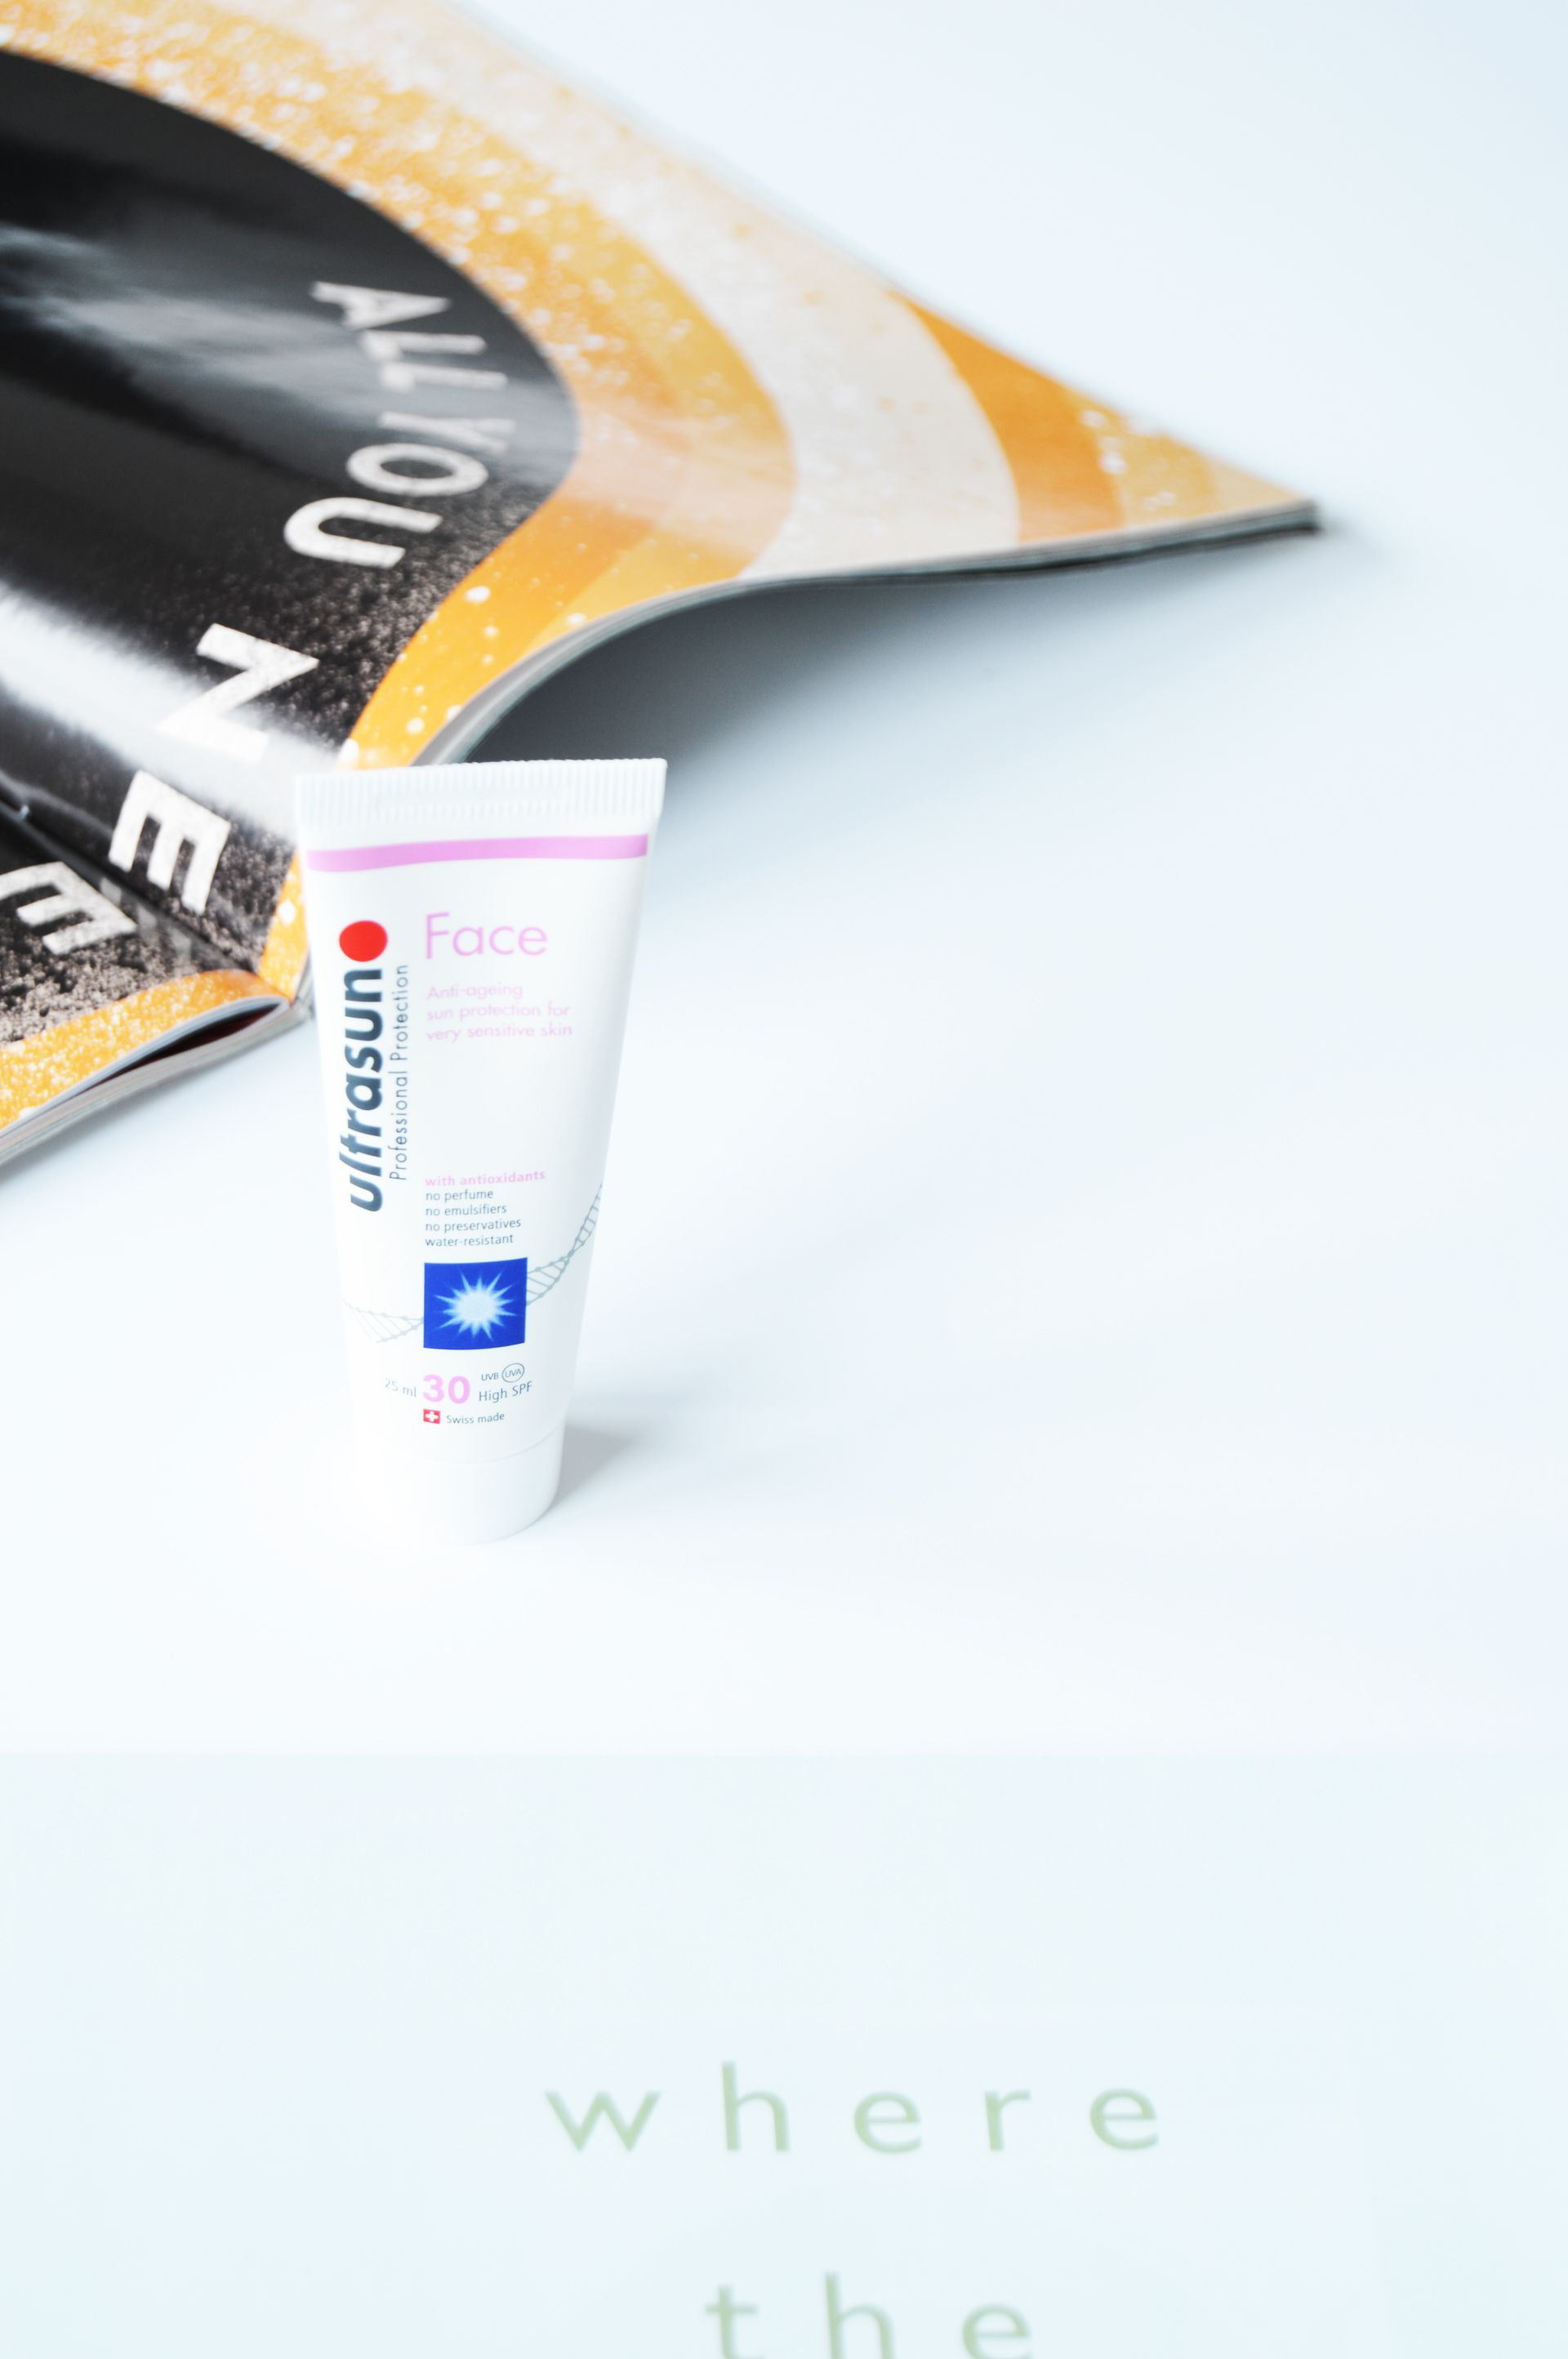 Ultrasun Anti-Ageing Sun Cream for Sensitive Skin SPF30 is a multi-purpose product which won't only keep your skin safe from the damaging effects of the sun rays and also fight against anti-aging with the active anti-aging ingredients.